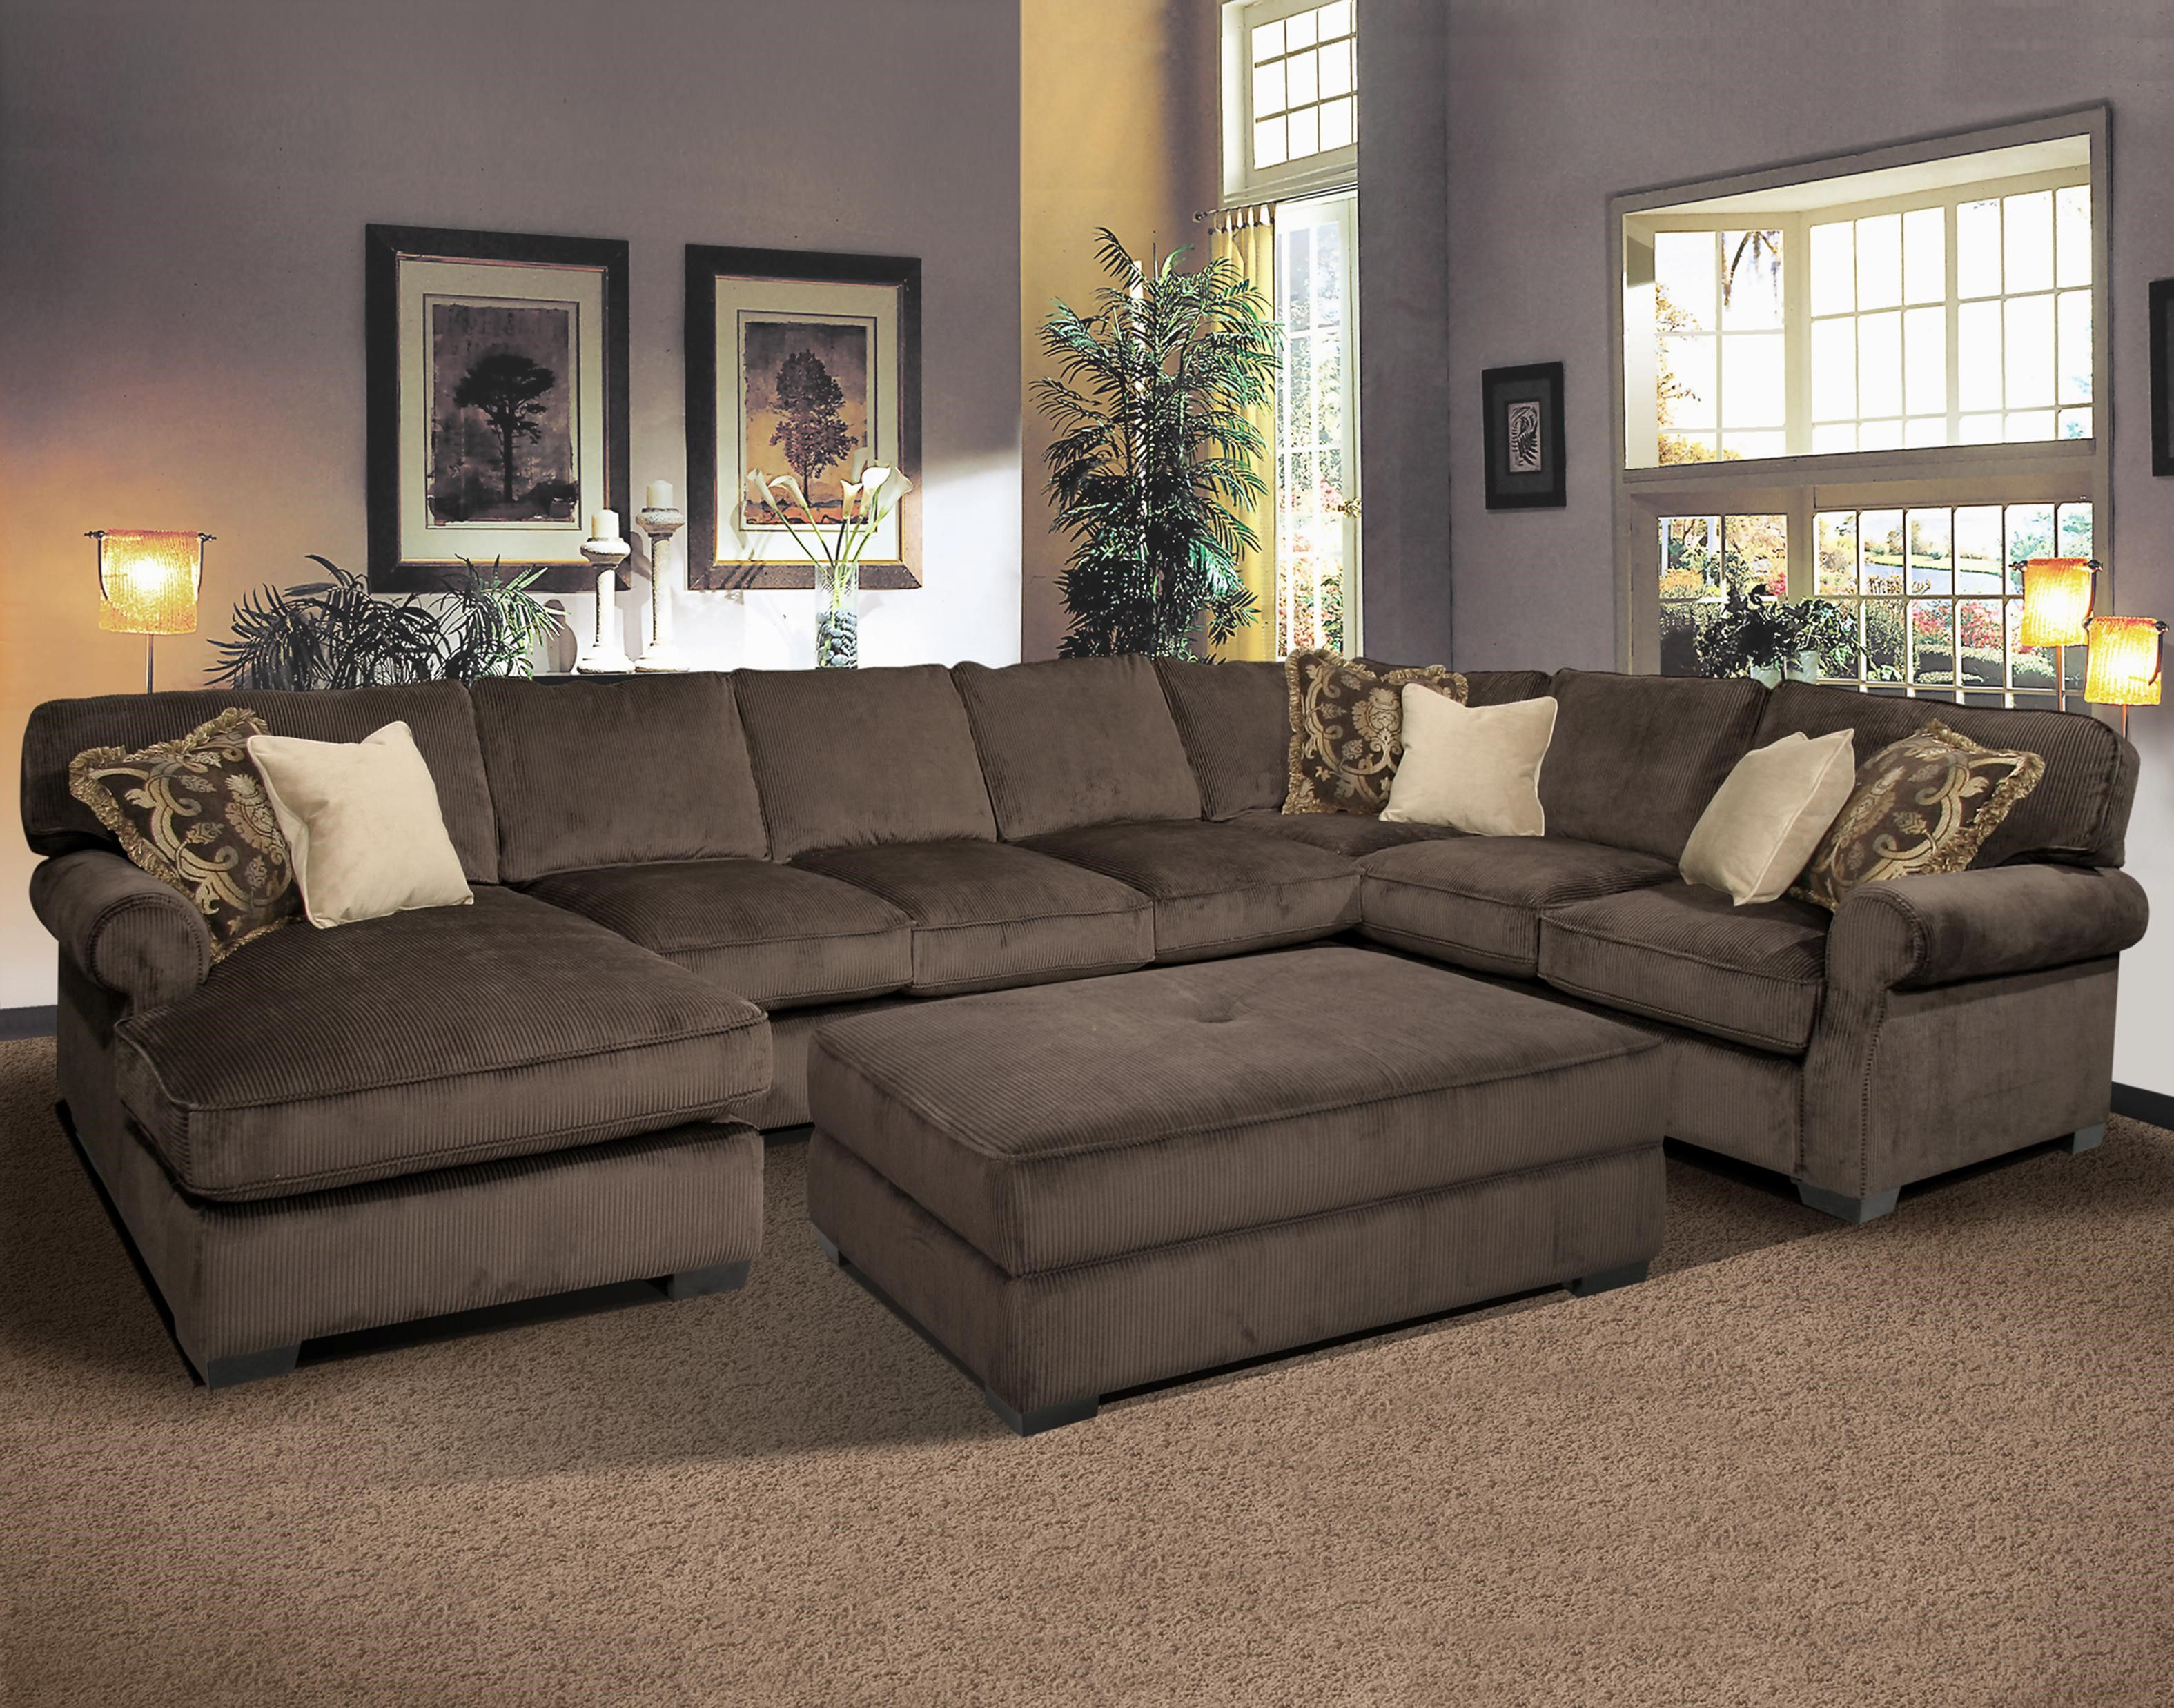 whalescanada sofas comforter beauteous furniture engaging comfortable or the for io in living fortable room